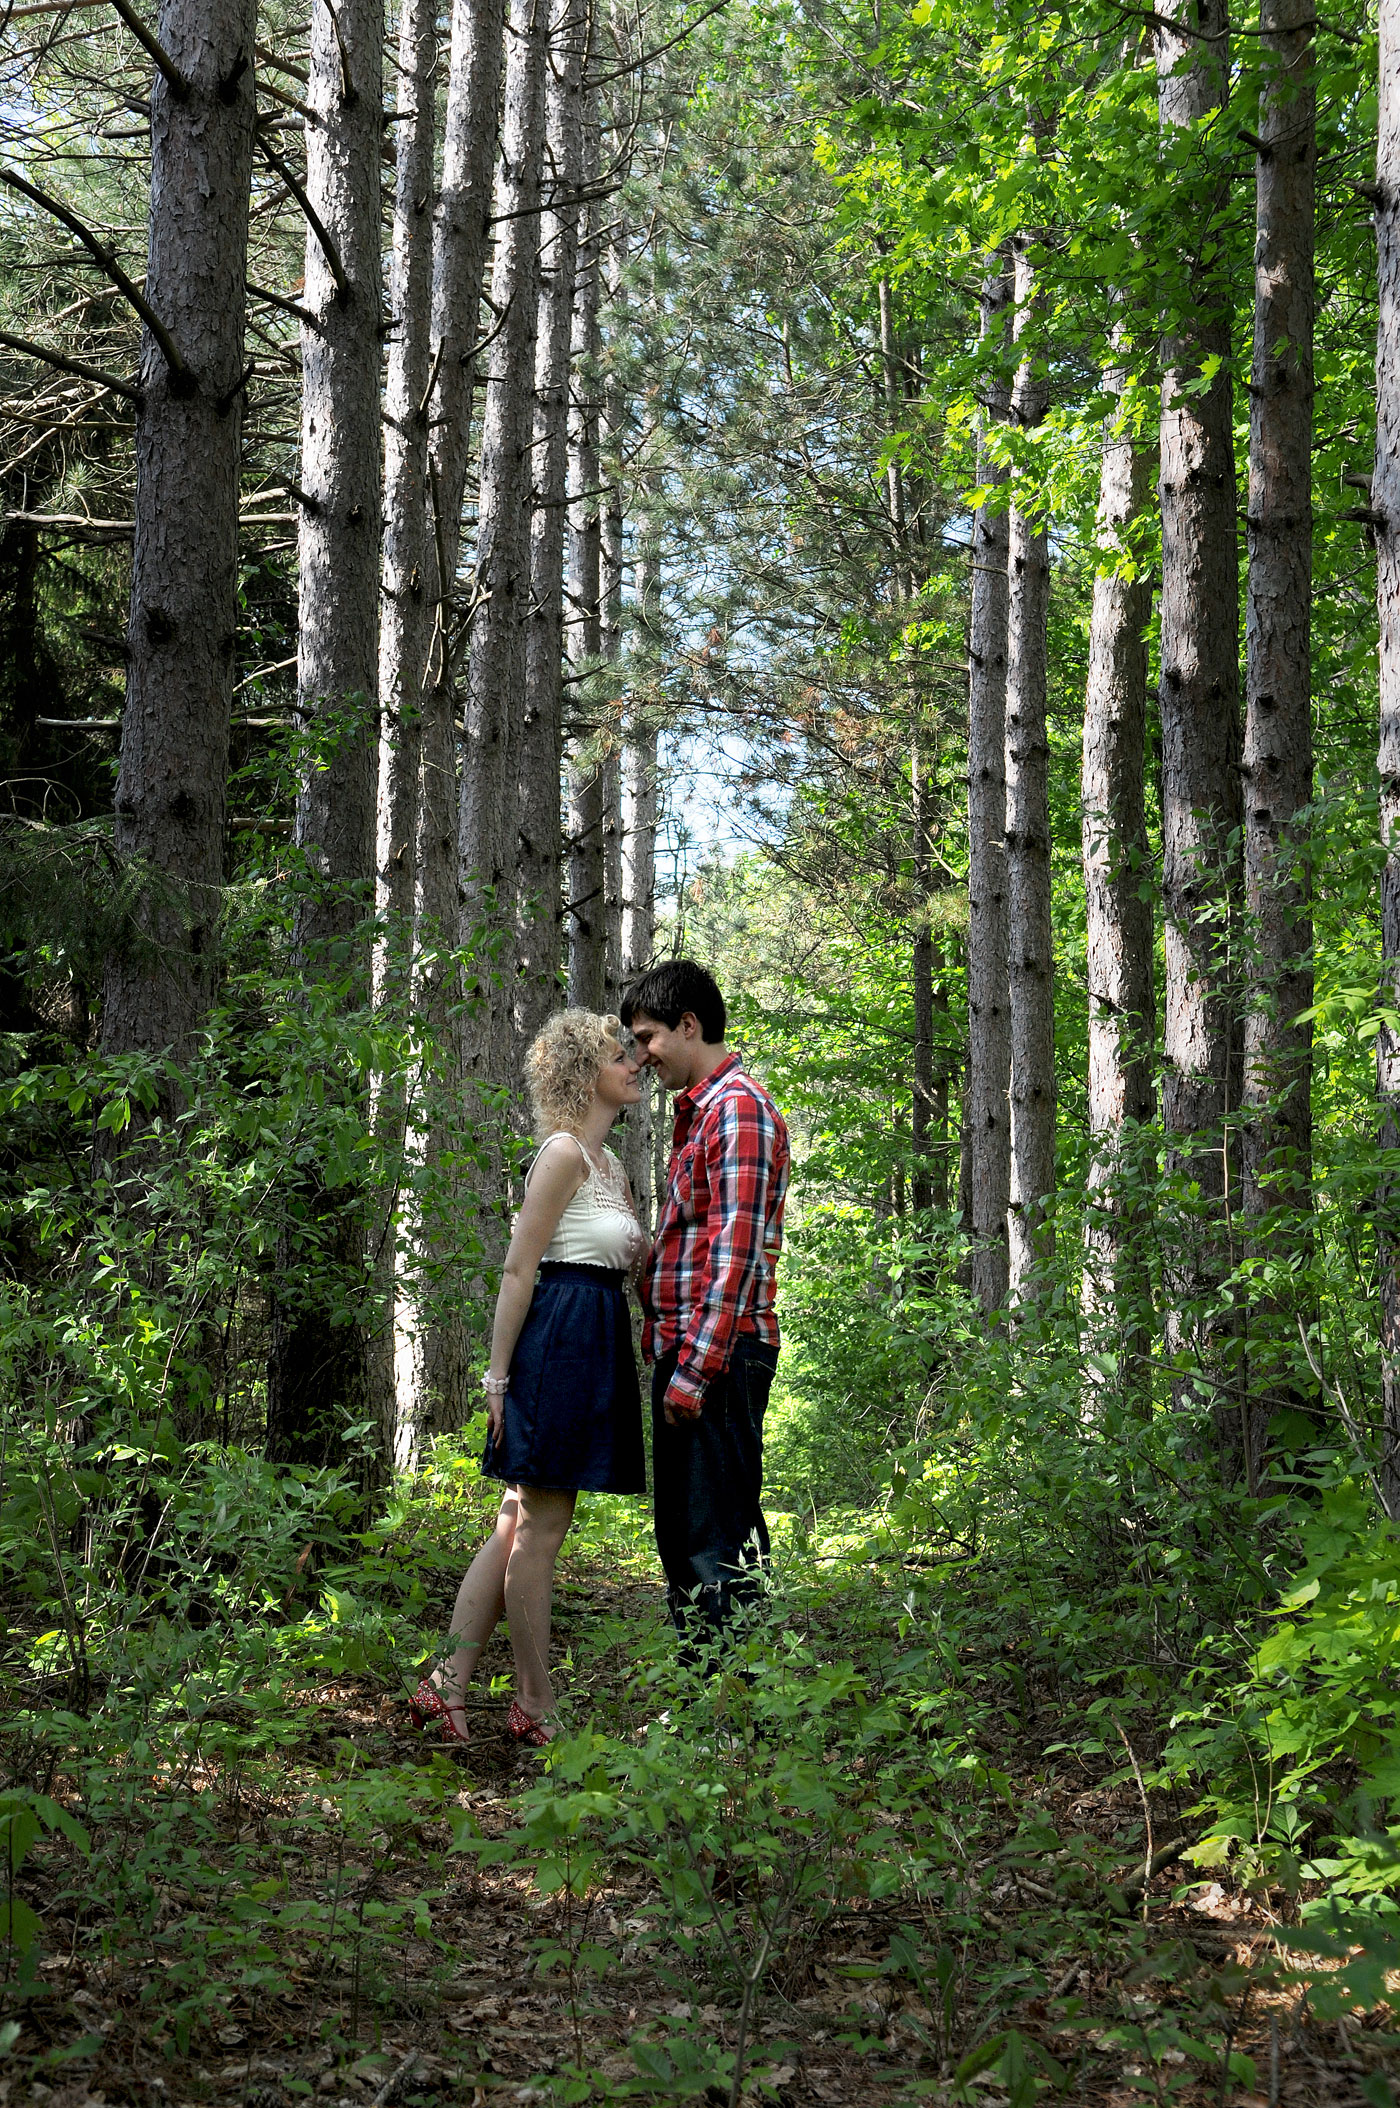 kaylen-aaron-engagement-country-st-clair-michigan-stunning-intimate-rustic-travel-9